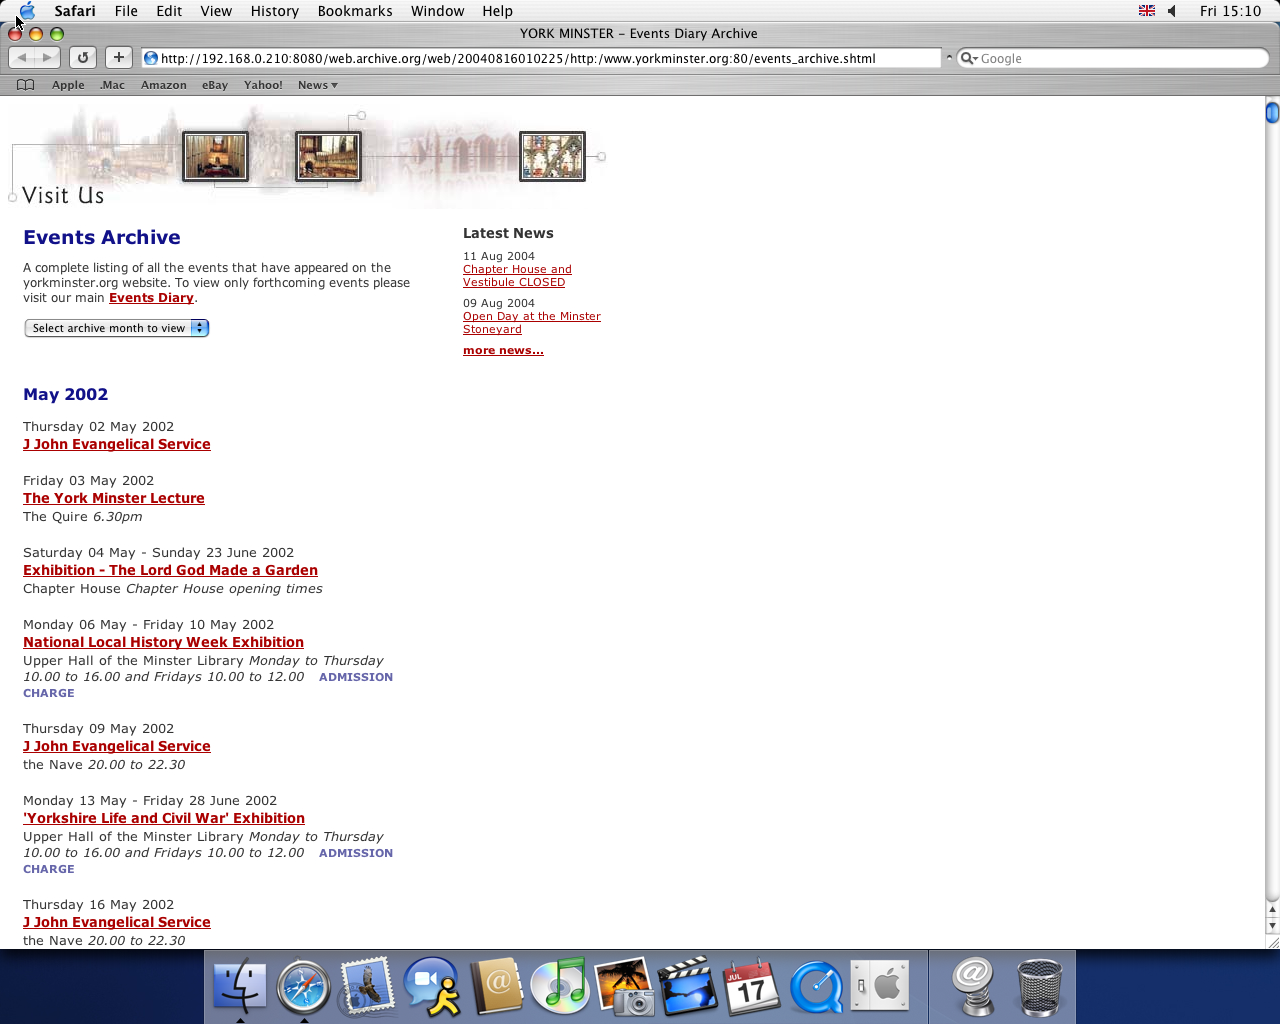 OS X 10.3 PPC with Safari 1.1 displaying a page from York Minster archived at August 16, 2004 at 01:02:25